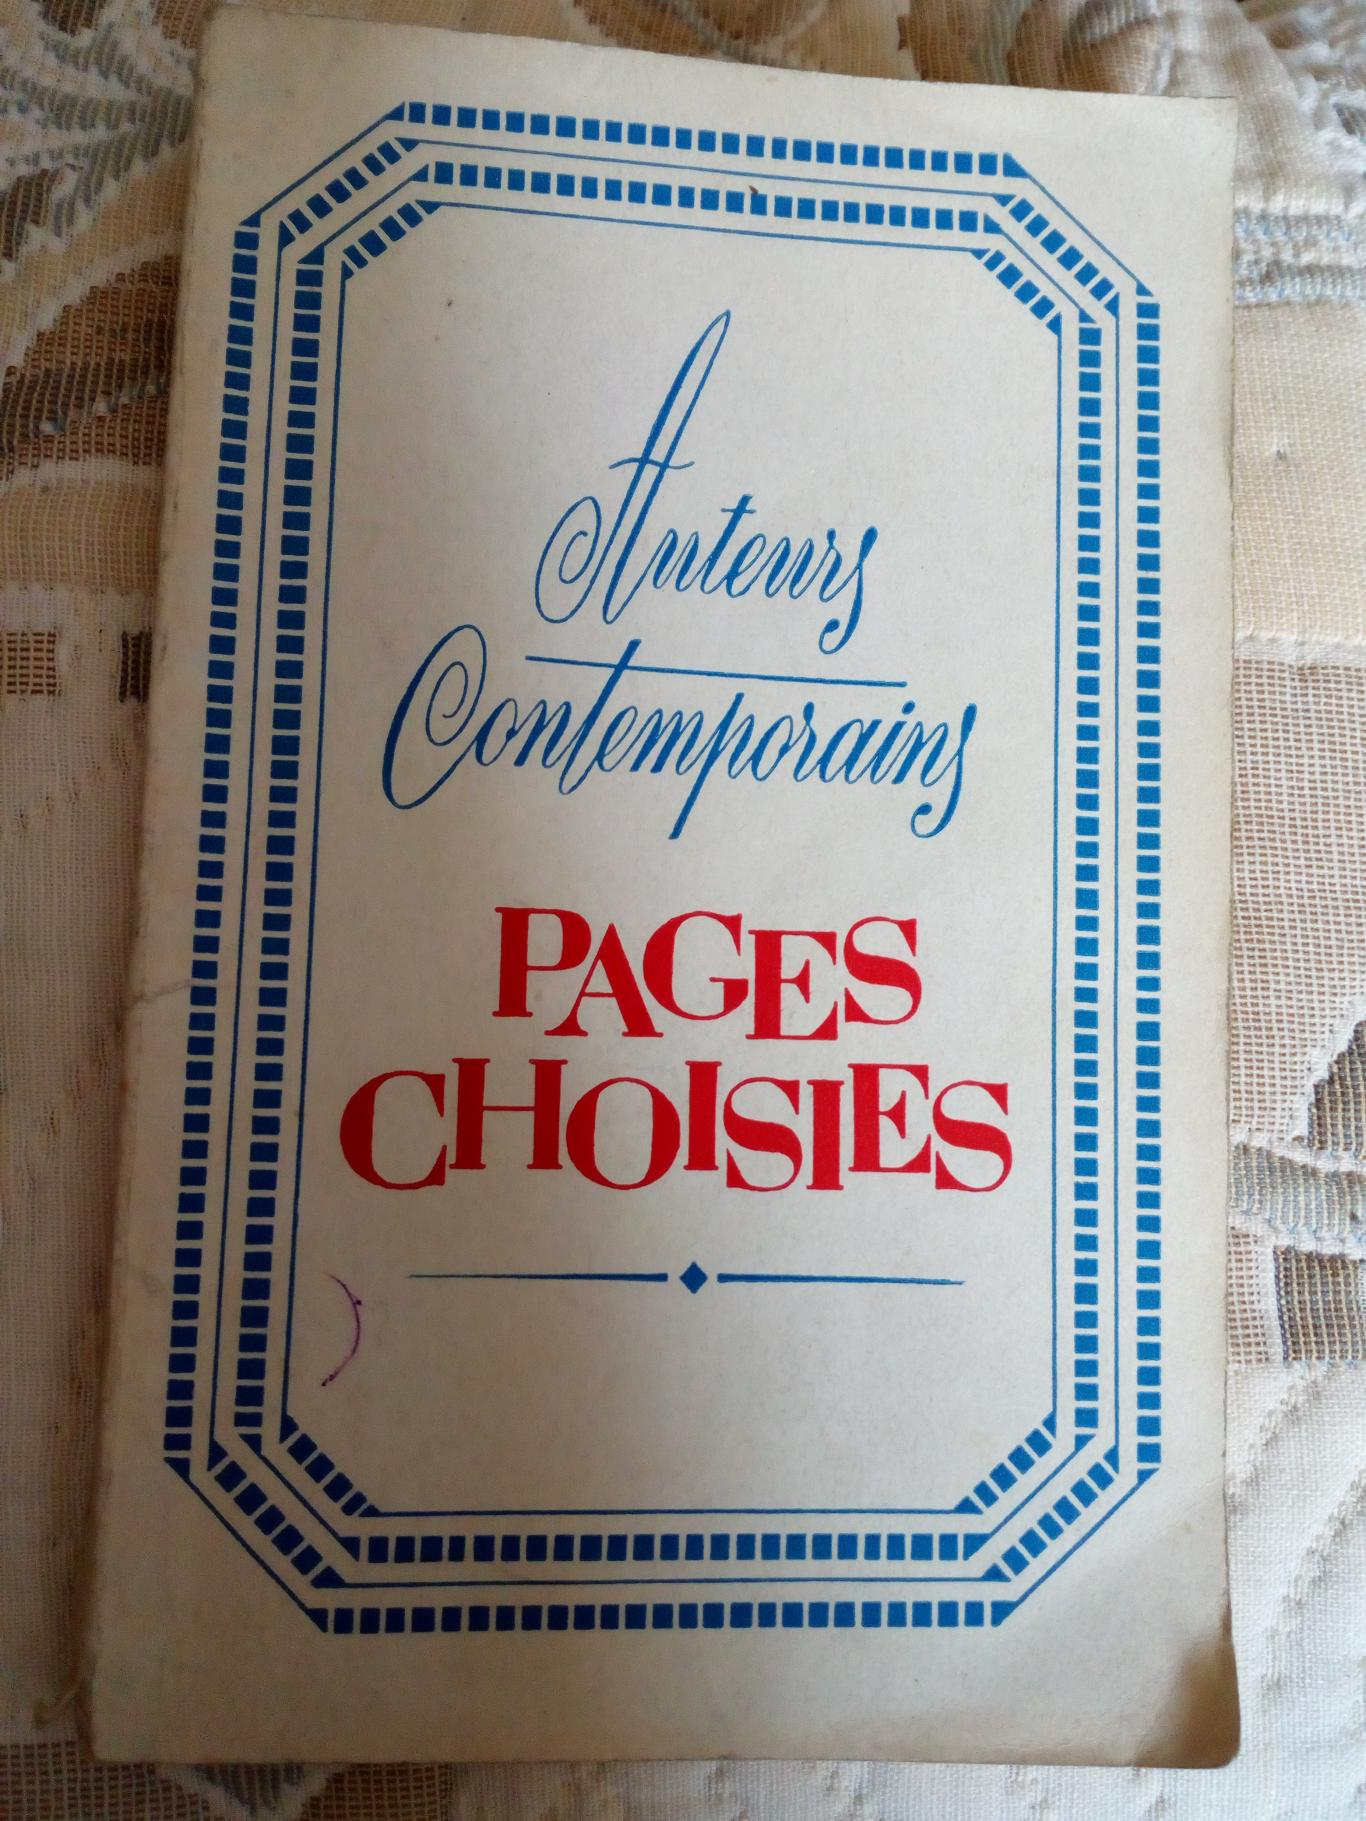 Pages choisies,